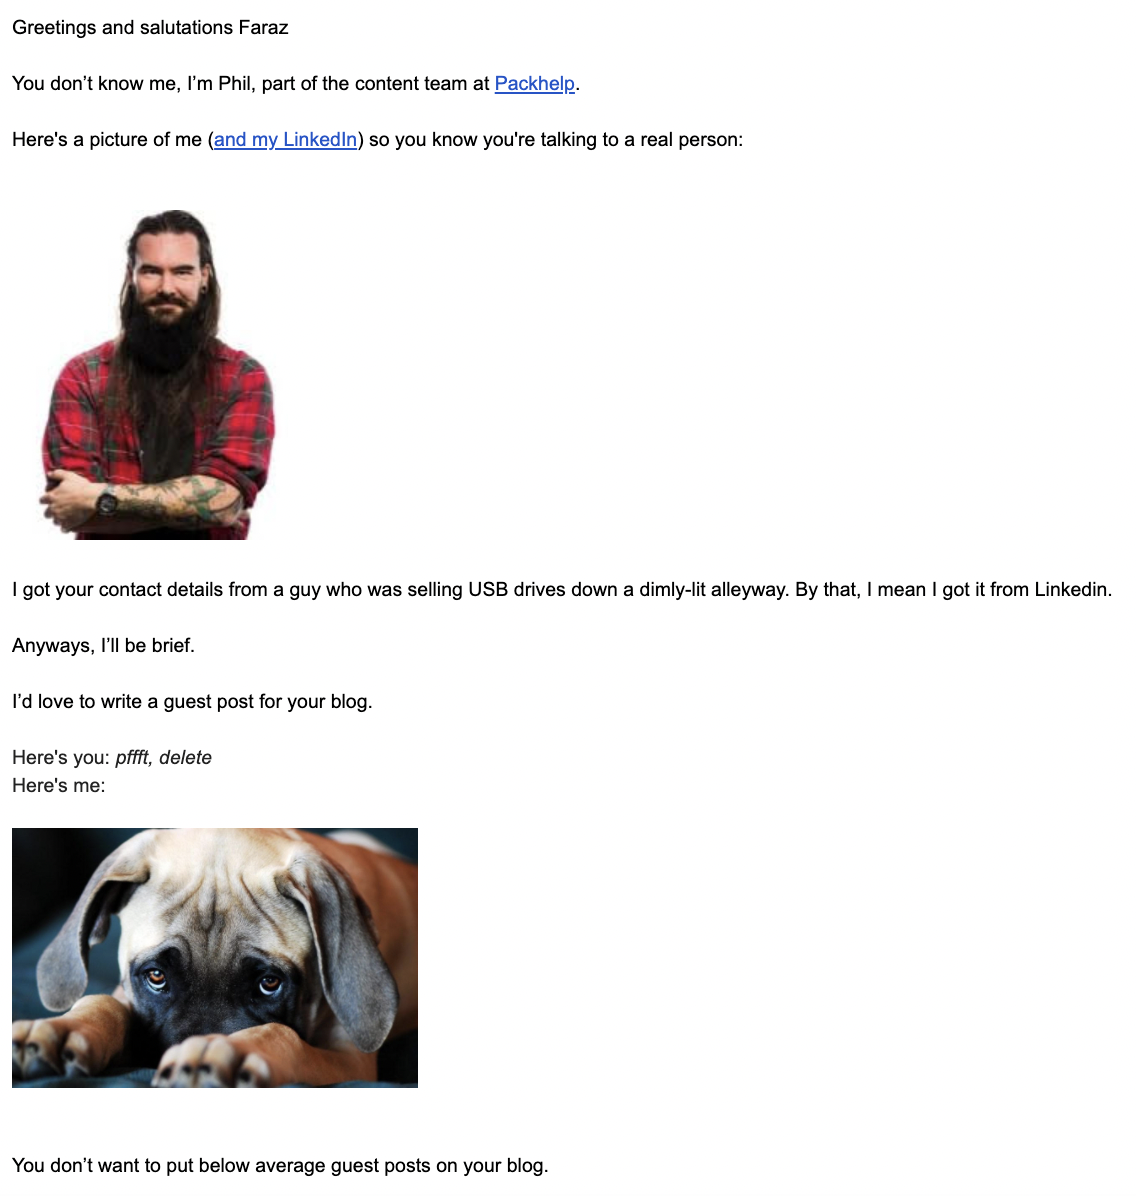 a funny yet engaging email